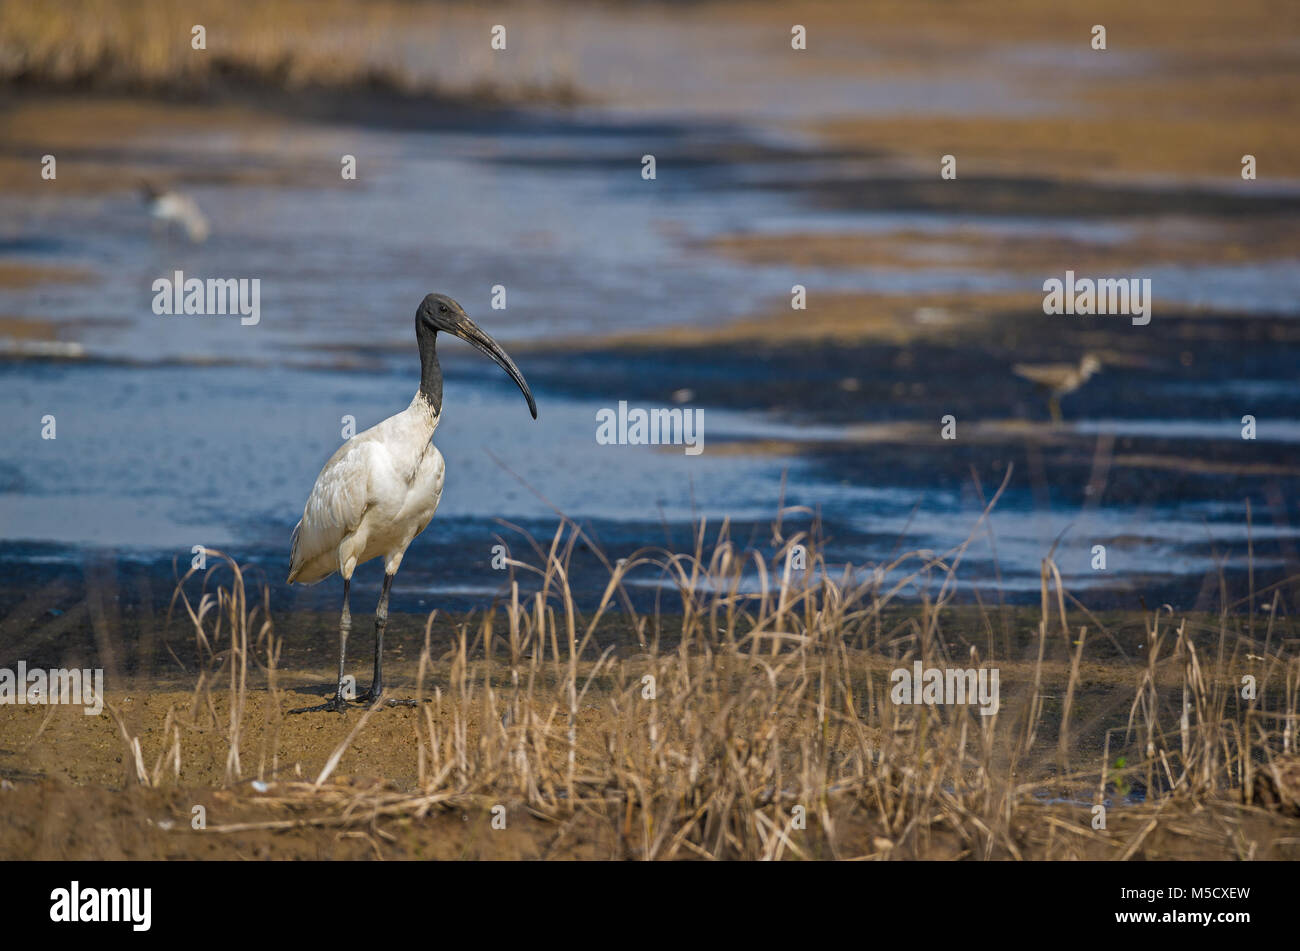 A adult black headed ibis standing on the side of a dried up river - Stock Image